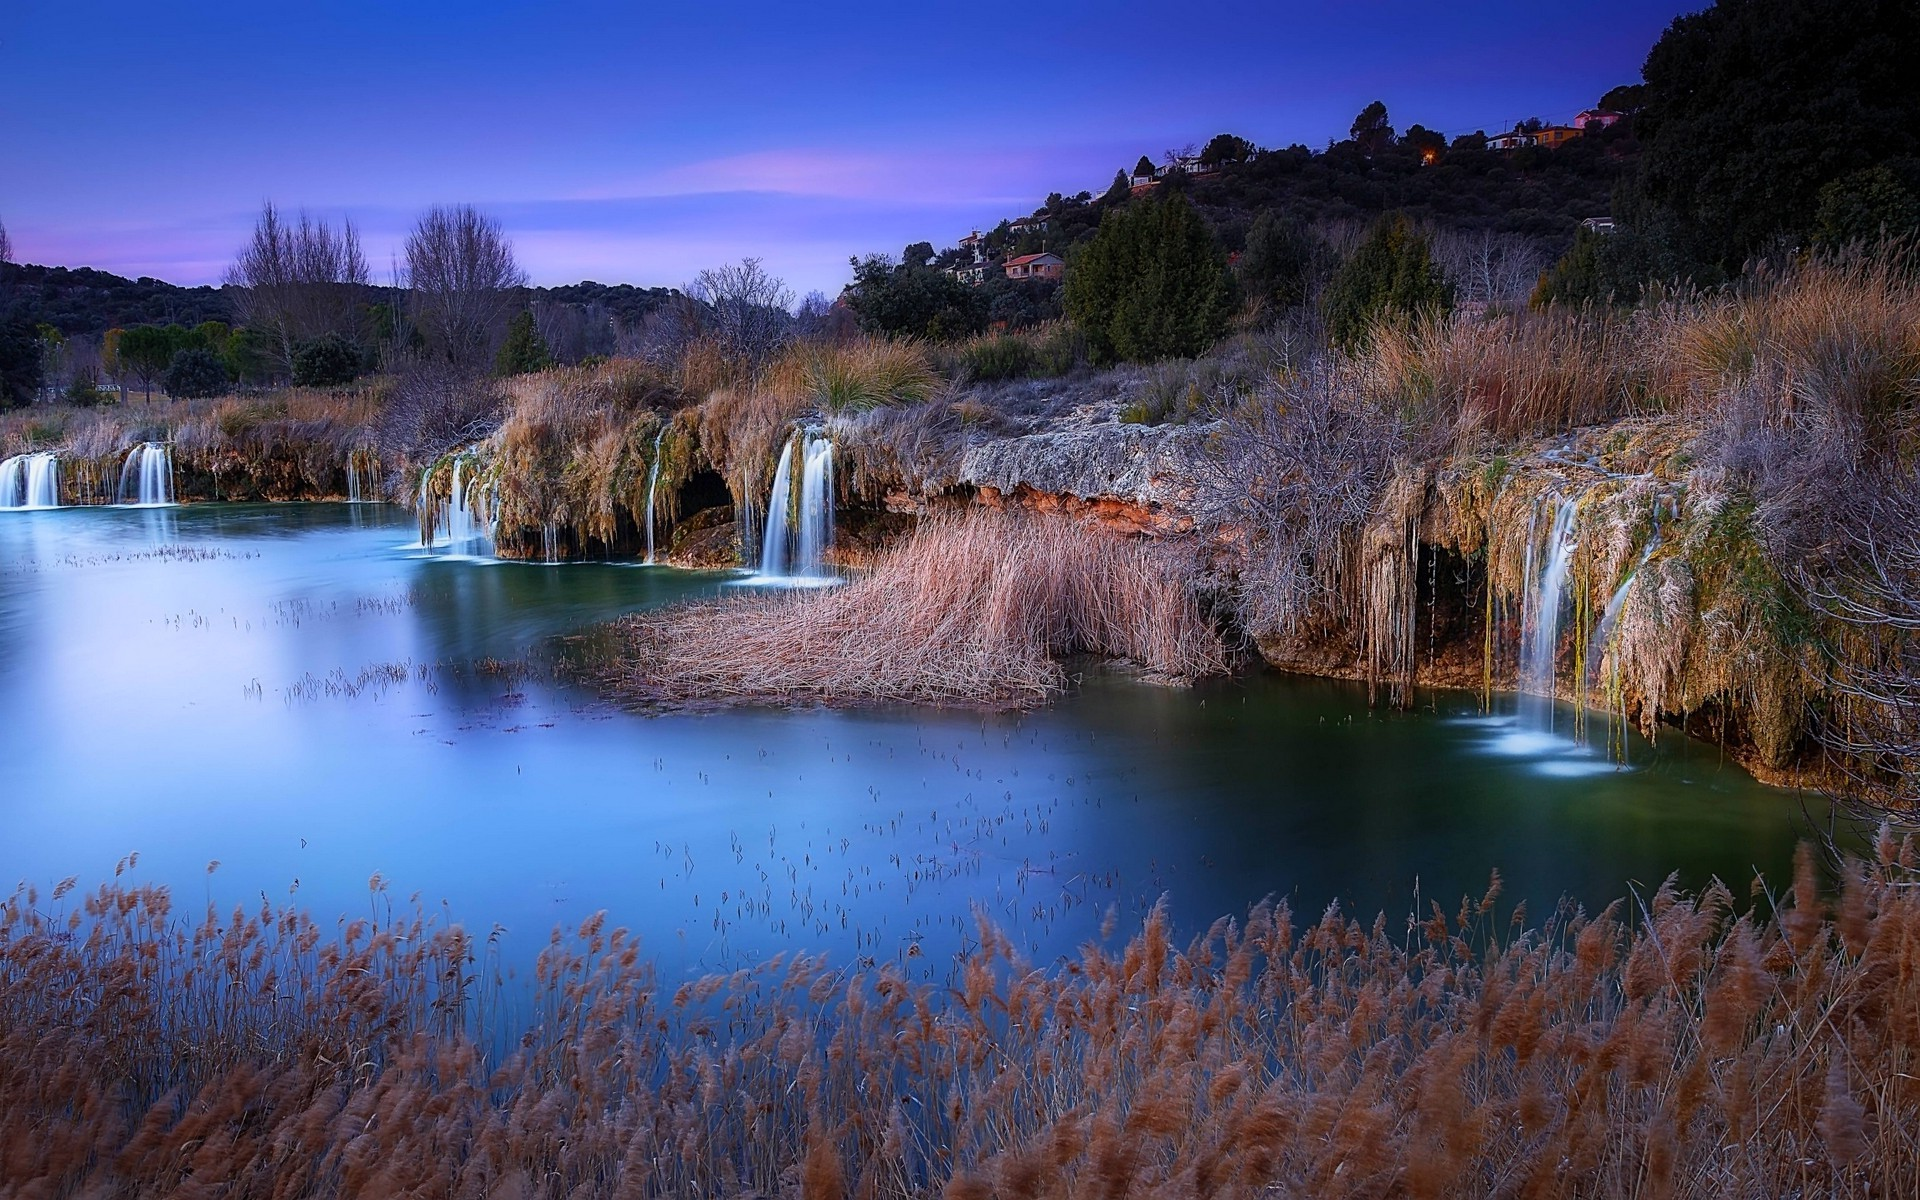 3d Waterfall Wallpaper For Mobile Landscape Nature Evening Lake Waterfall Hill Village